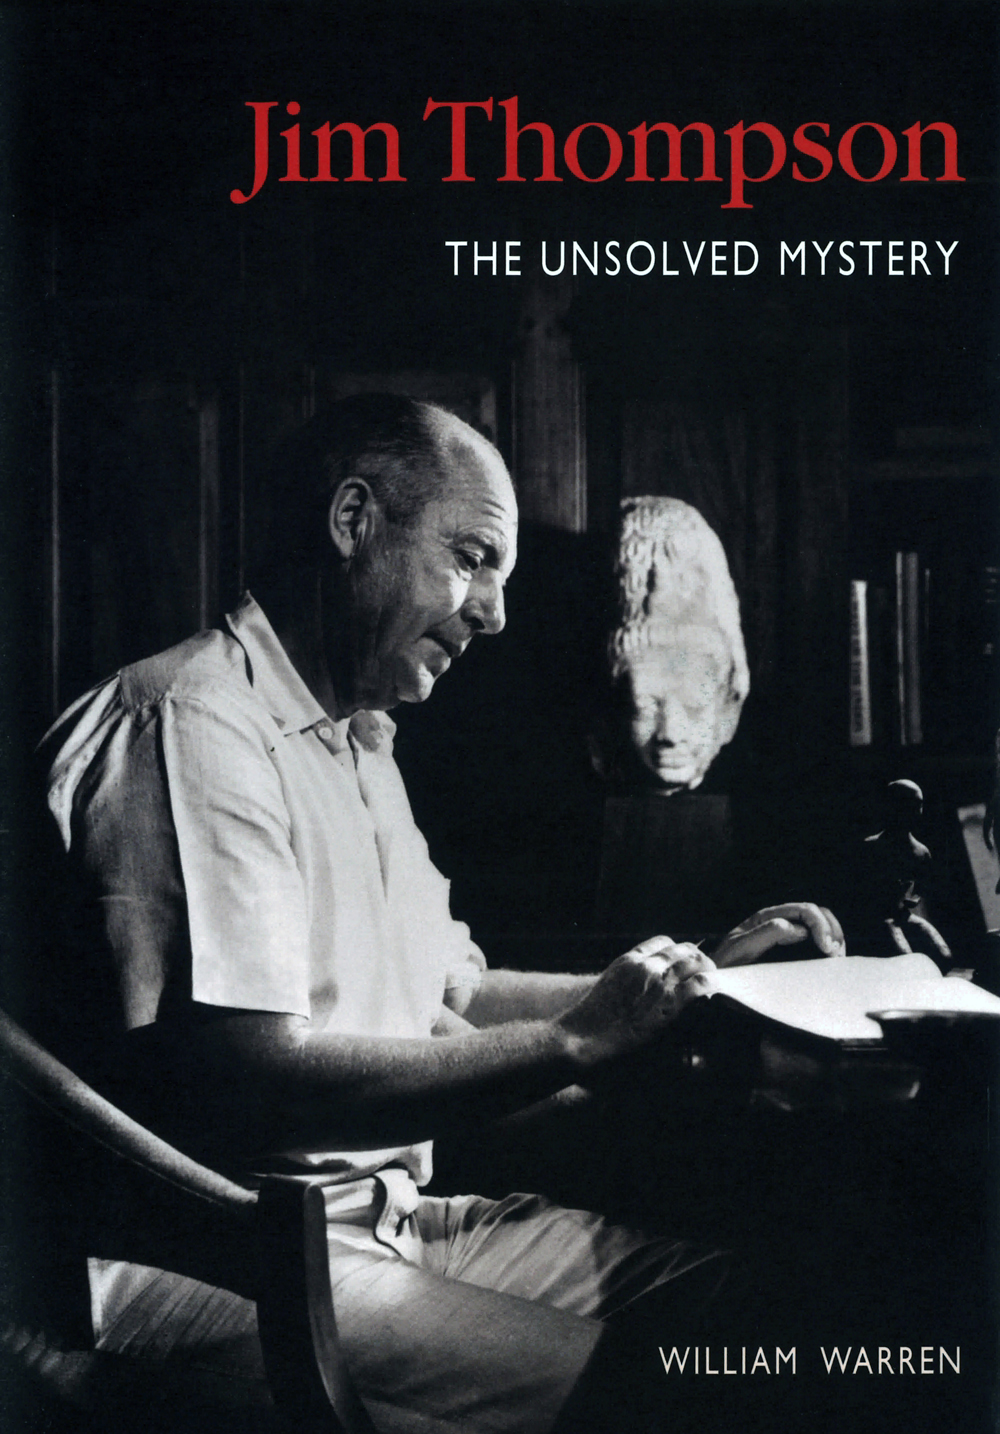 Jim Thompson - The Unsolved Mystery